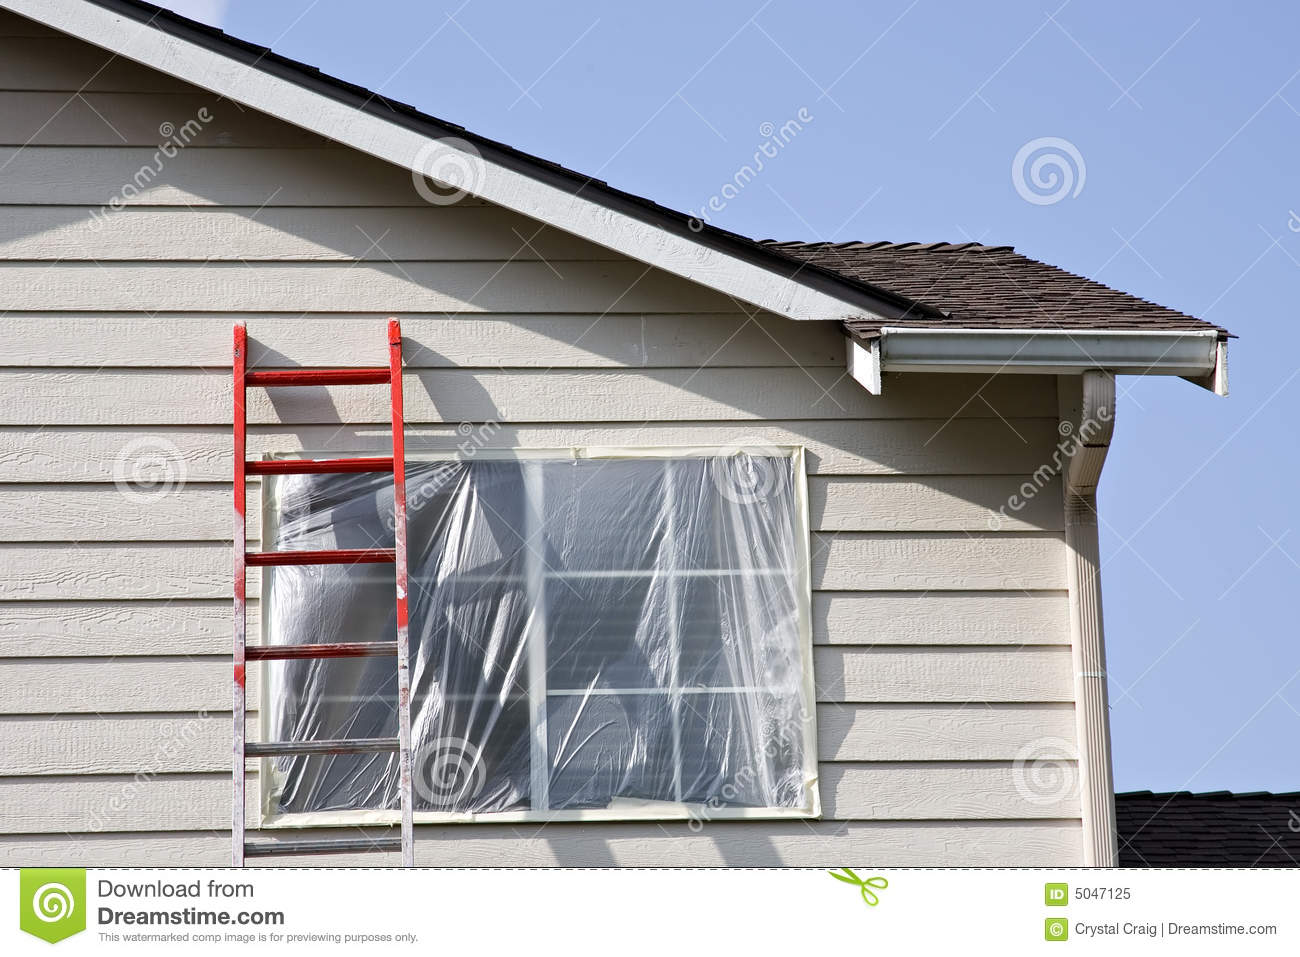 Exterior house painting royalty free stock photo image 5047125 - Painting preparation exterior photos ...